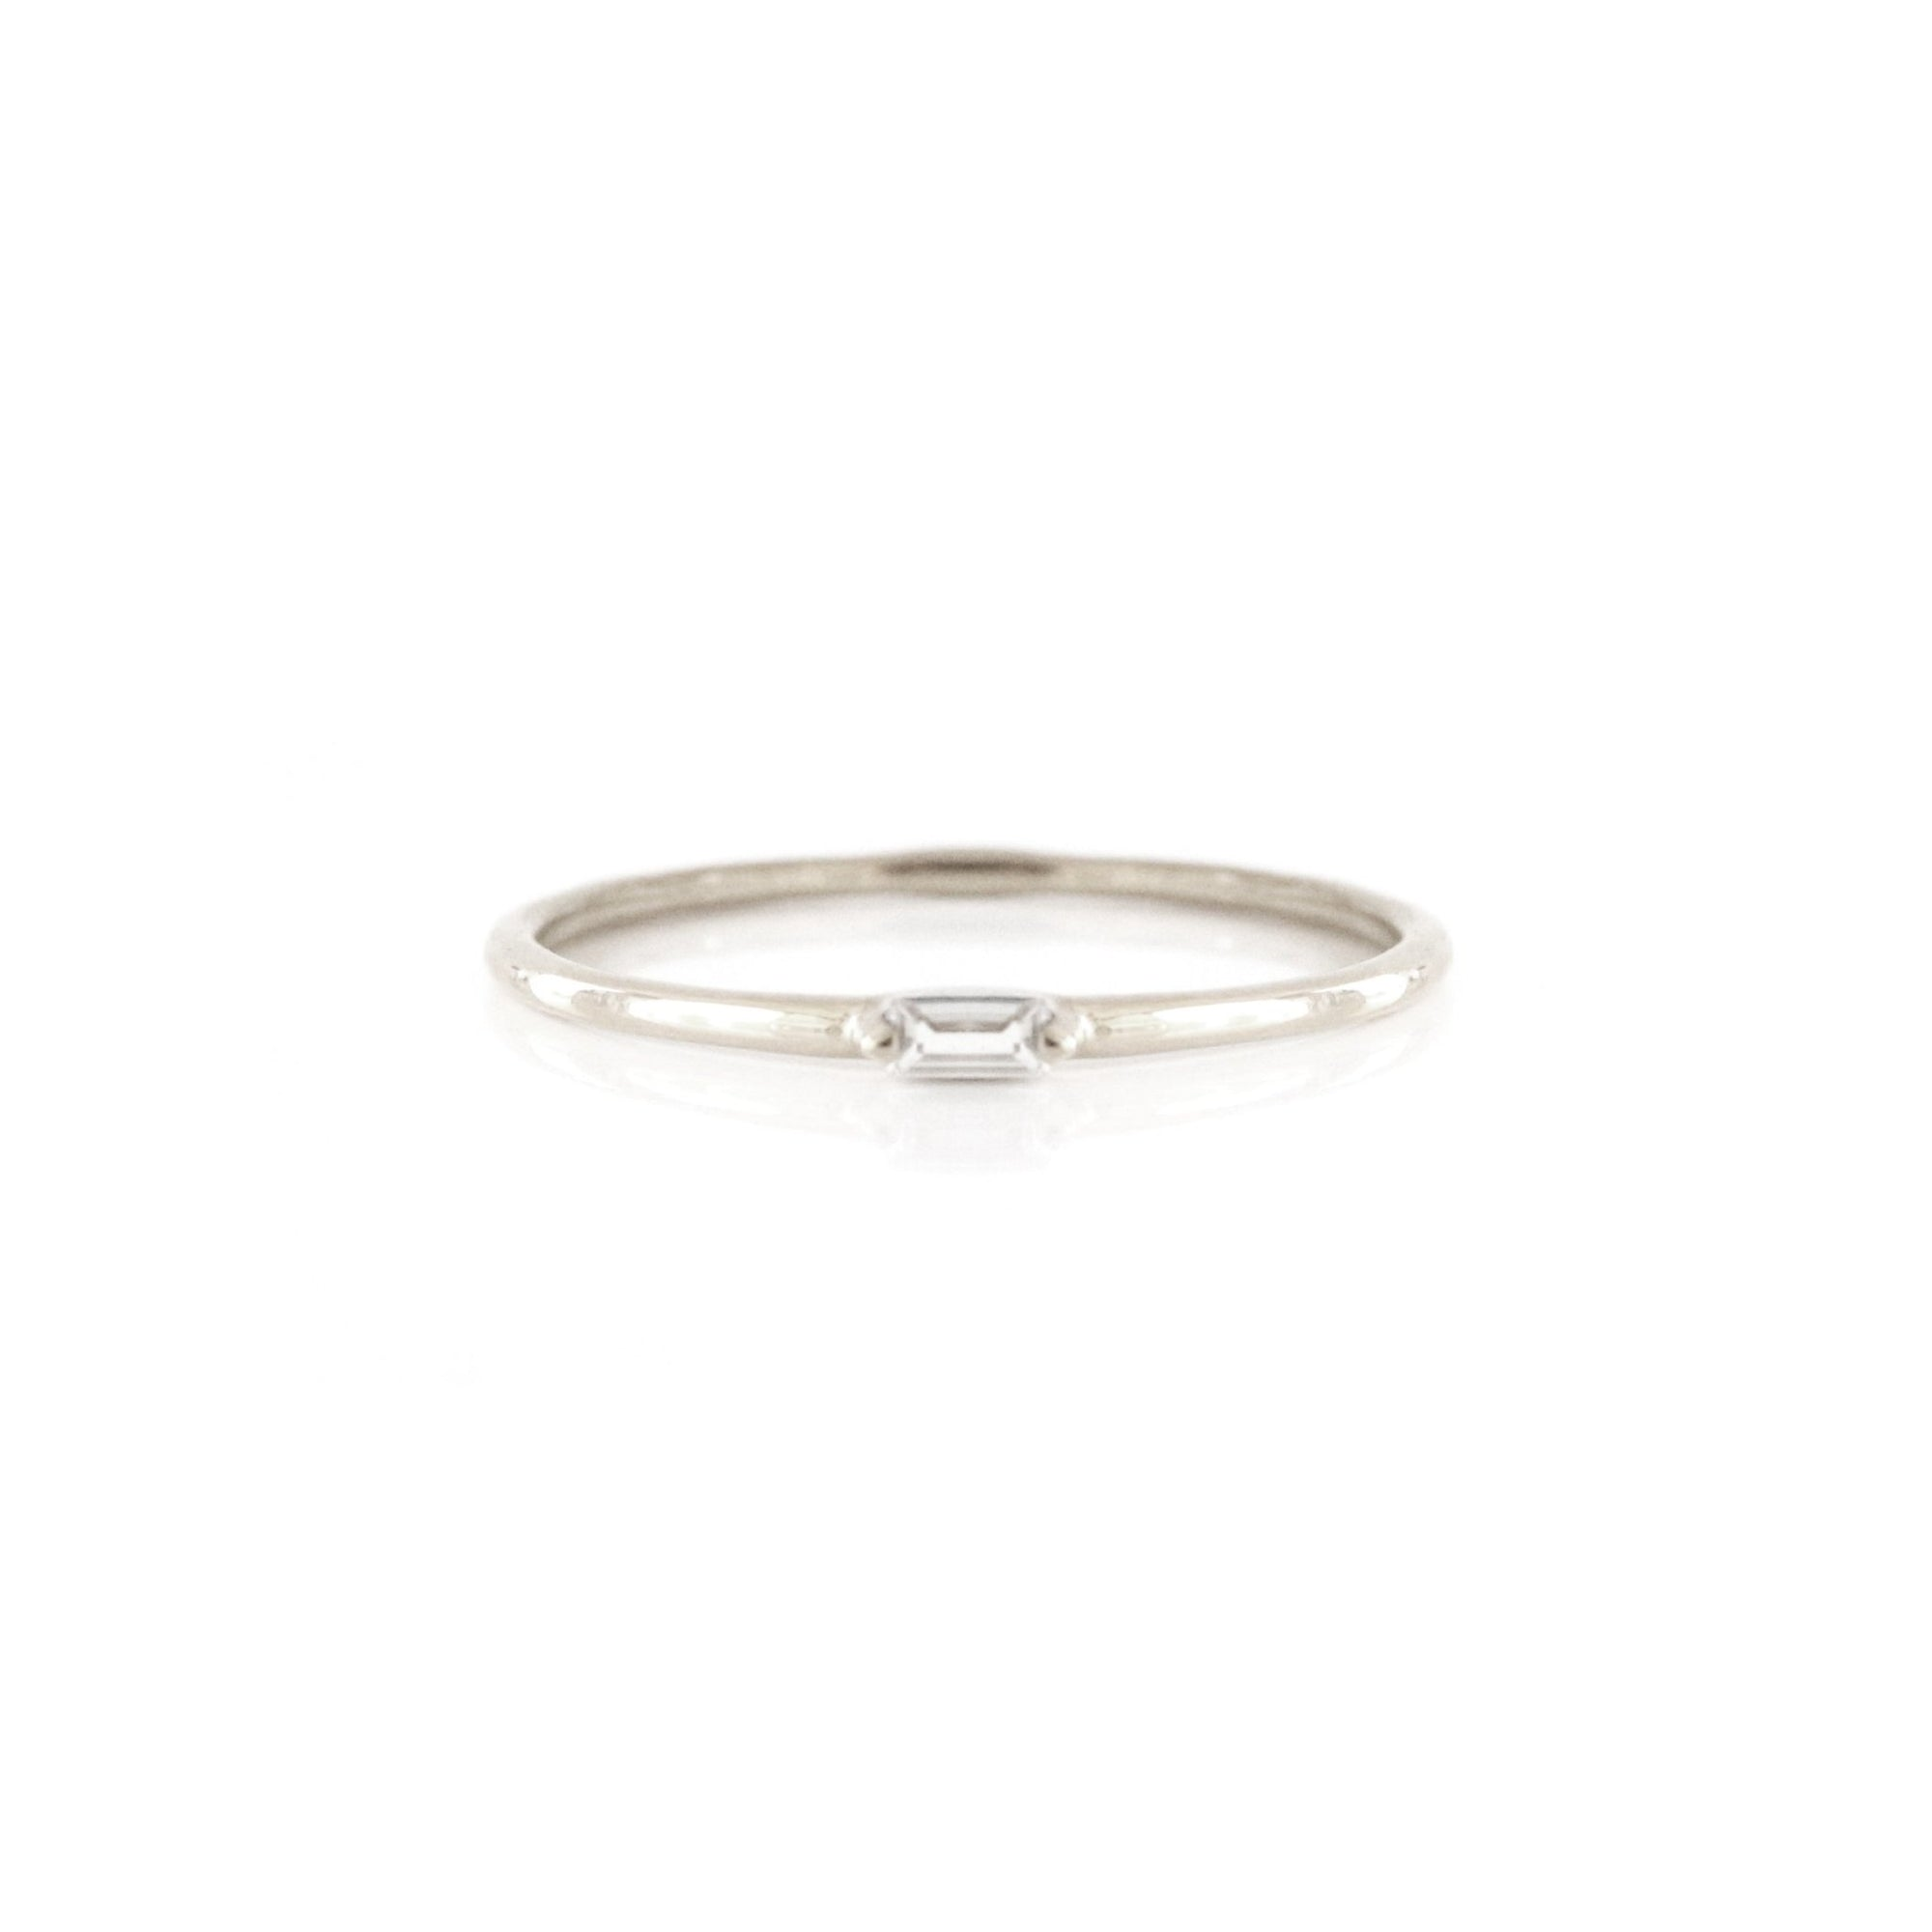 Loyal Solitaire Stacking Ring - White Topaz & Silver - SO PRETTY CARA COTTER